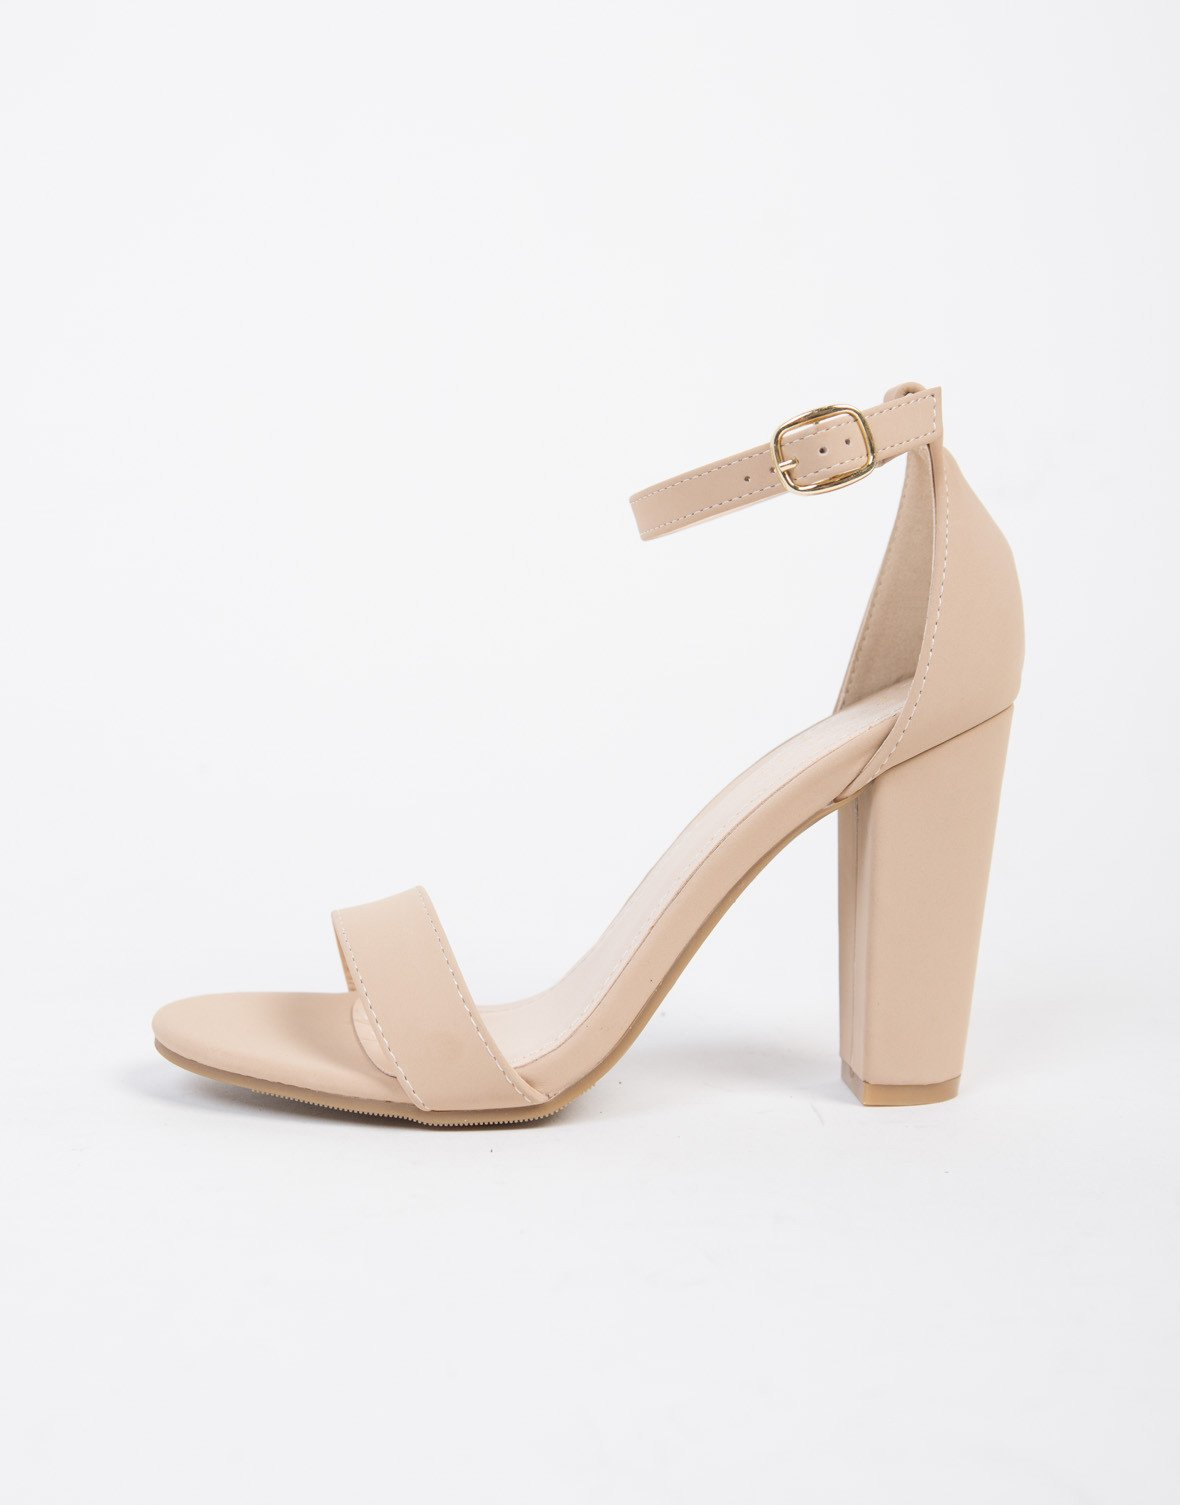 5080b06ec5d8 Chunky Ankle Strapped Sandals. Chunky Ankle Strapped Sandals Nude Heels ...